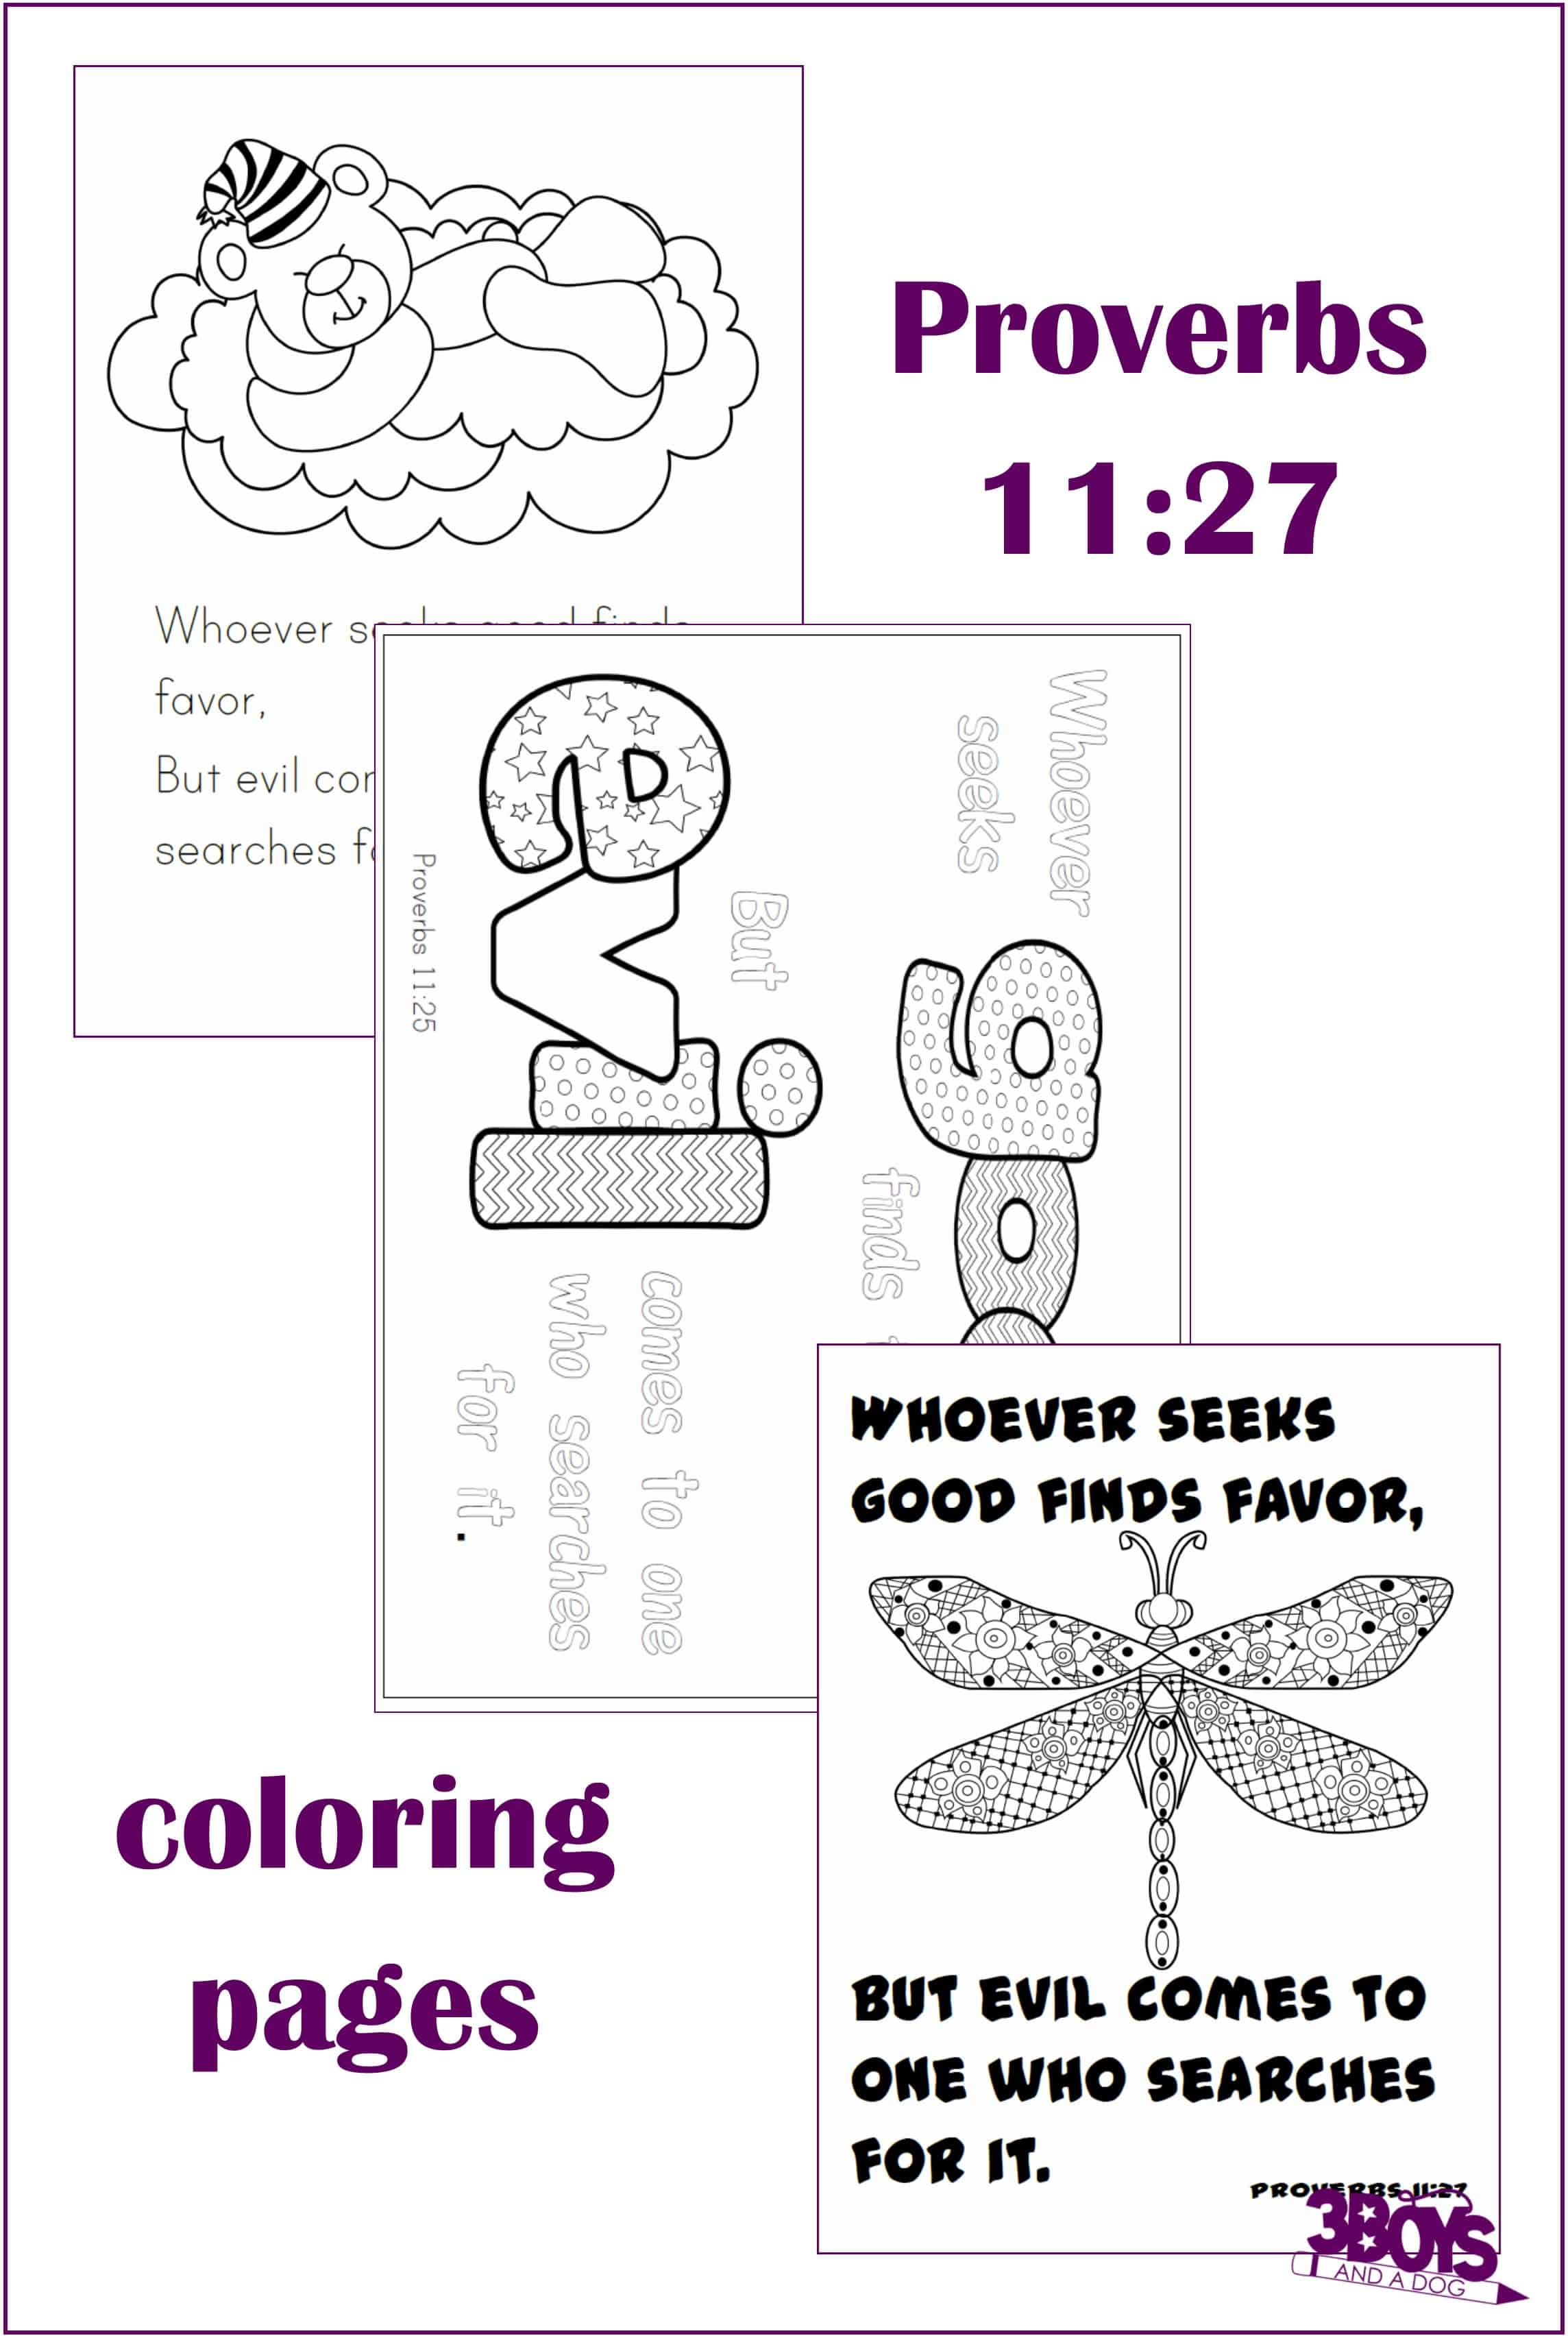 Proverbs 11:27 Coloring Pages